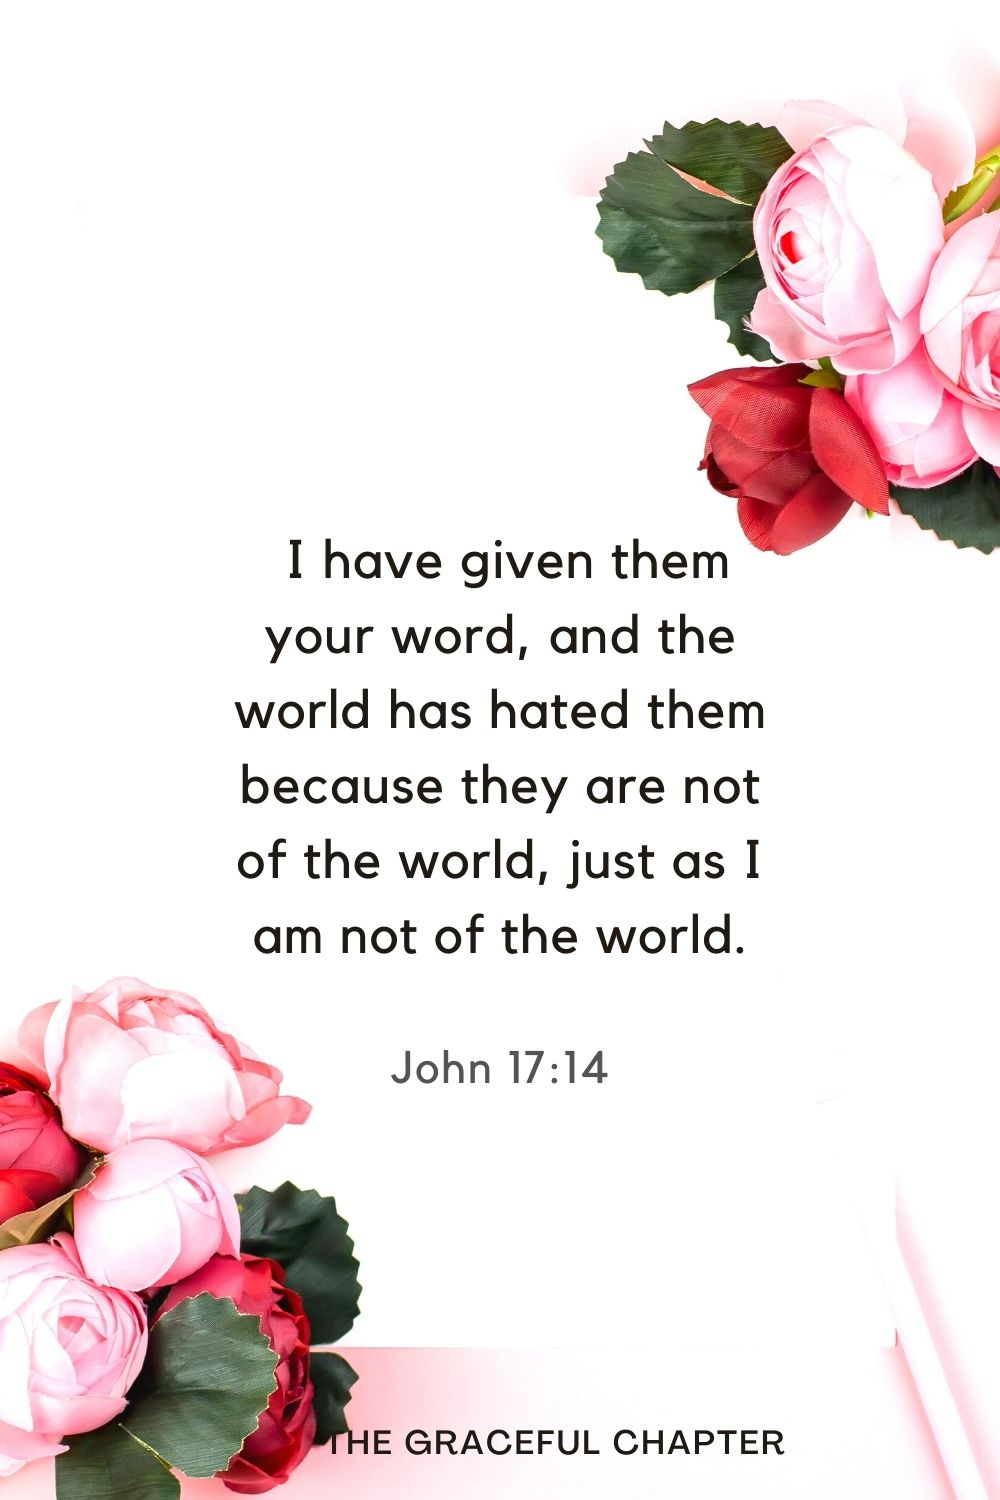 I have given them your word, and the world has hated them because they are not of the world, just as I am not of the world. John 17:14